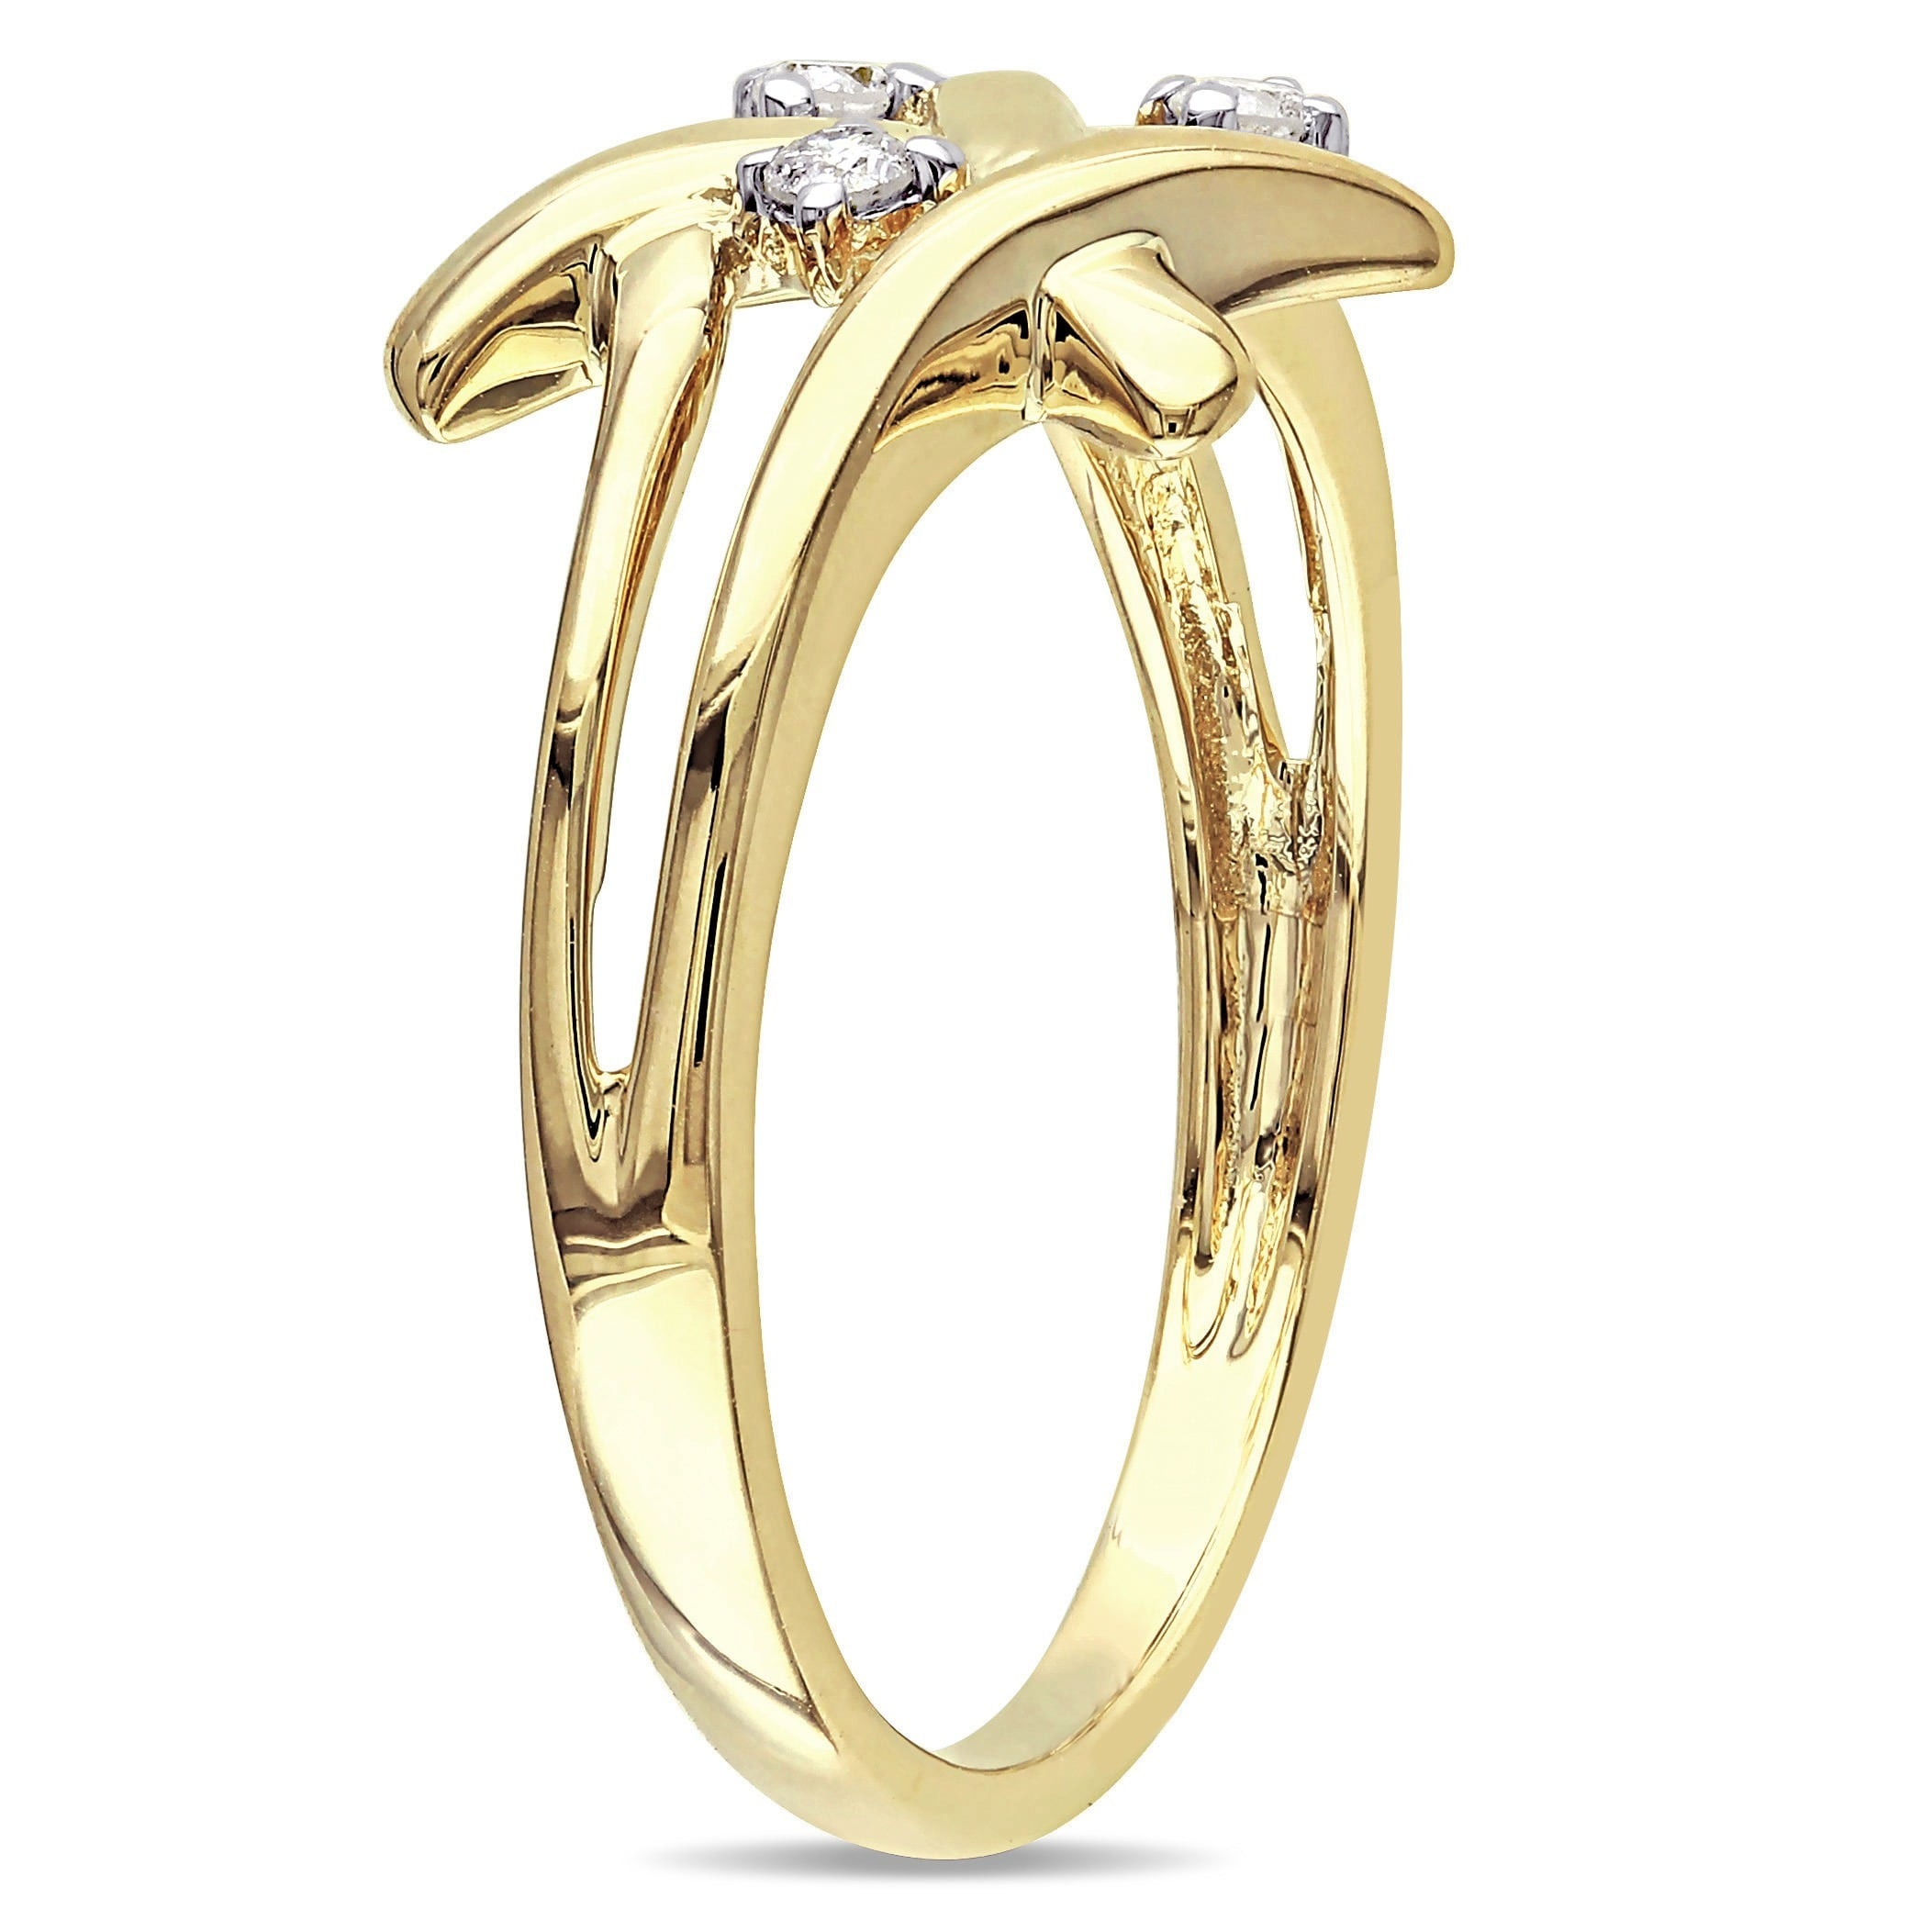 3 Diamond Promise Ring in 10K Yellow Gold 1//10 cttw, G-H,I2-I3 Size-10